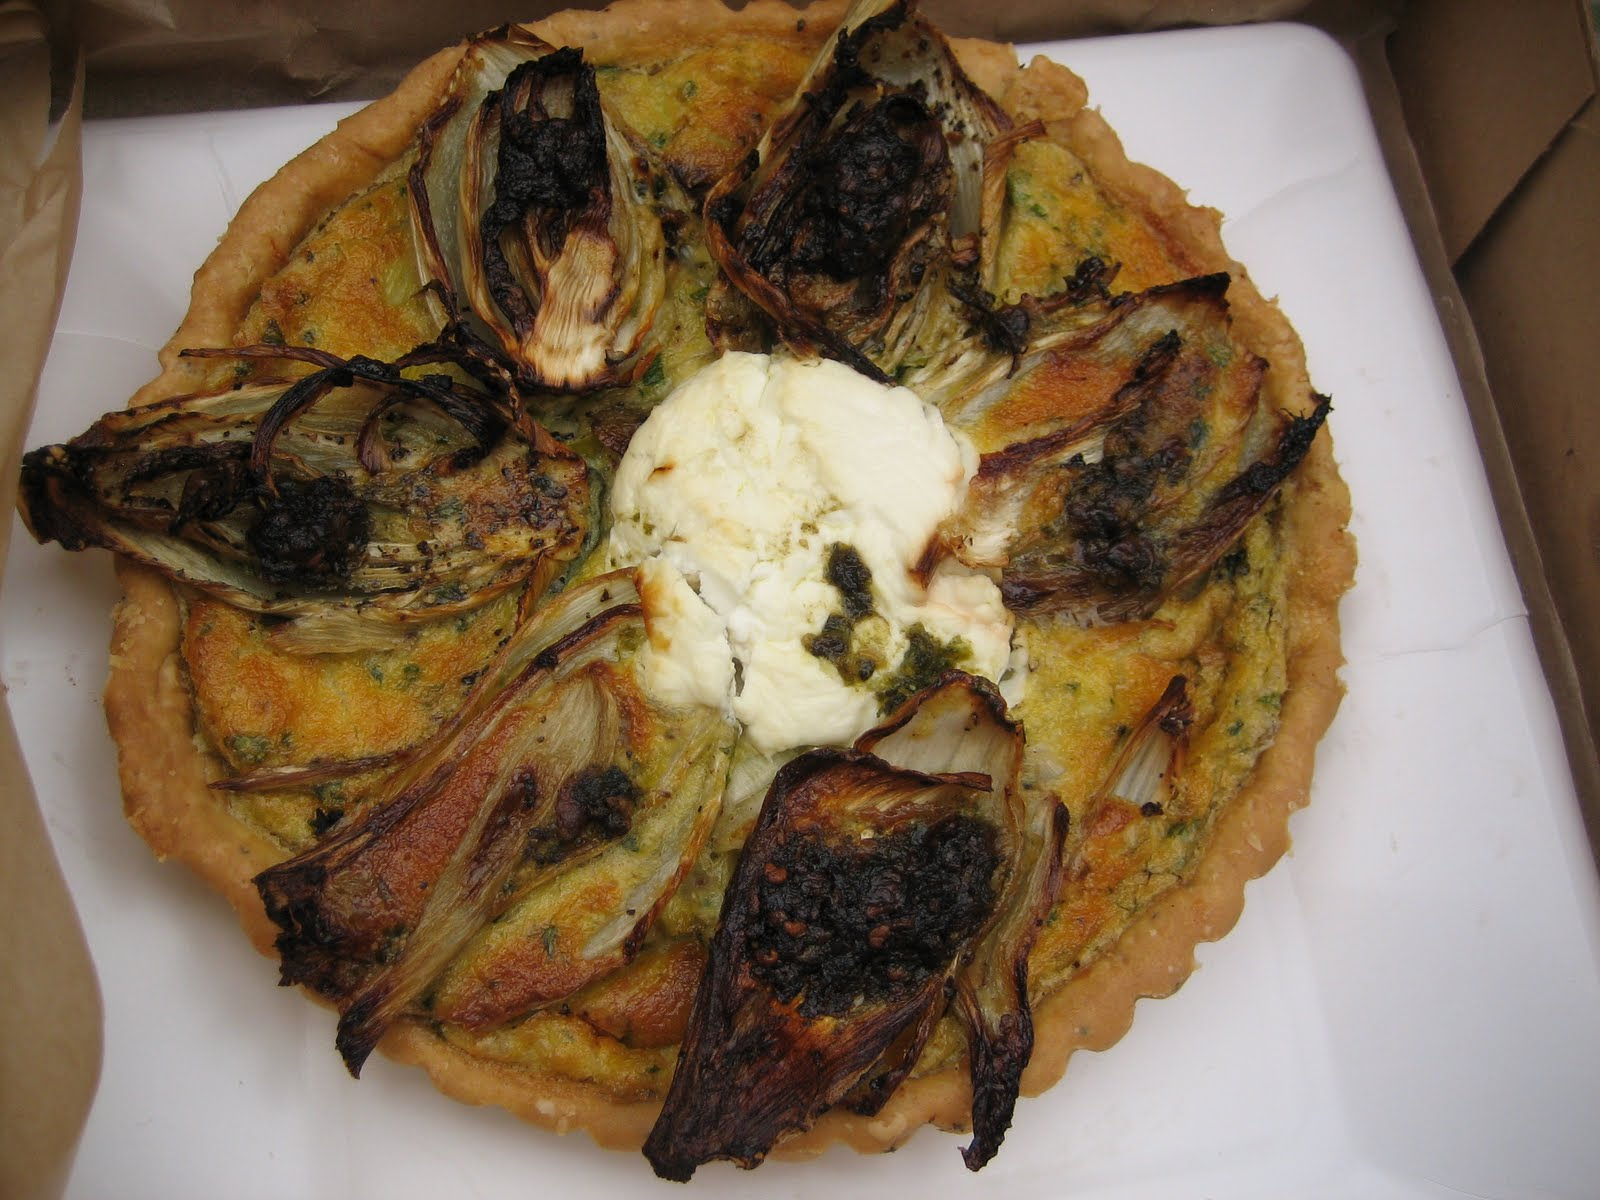 ... Day At The Market: Red Barn Bakery and The Fennel Savory Tart